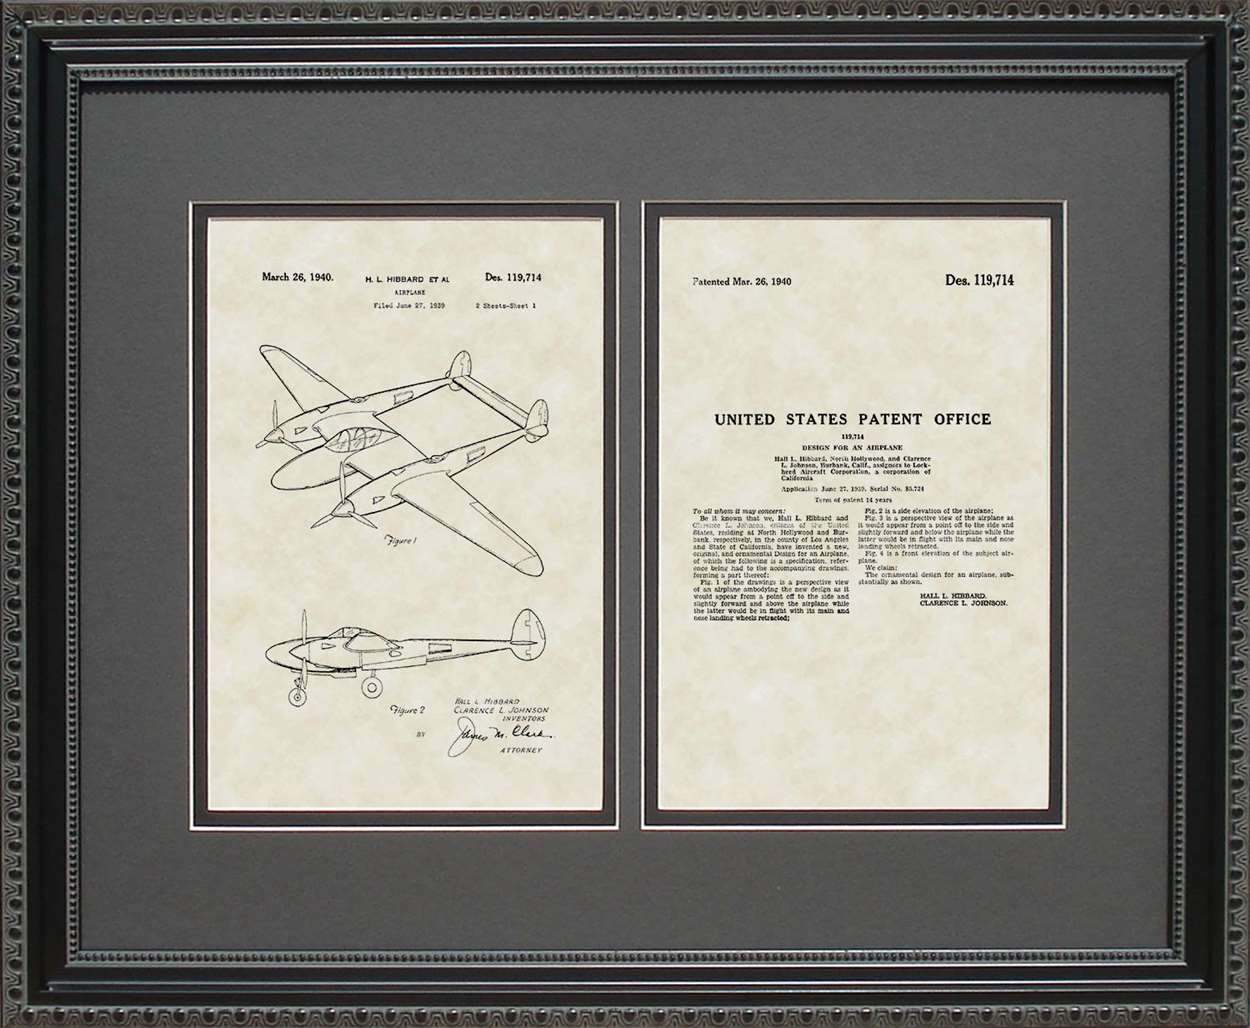 P-38 Aircraft Patent, Art & Copy, Hibbard, 1940, 16x20